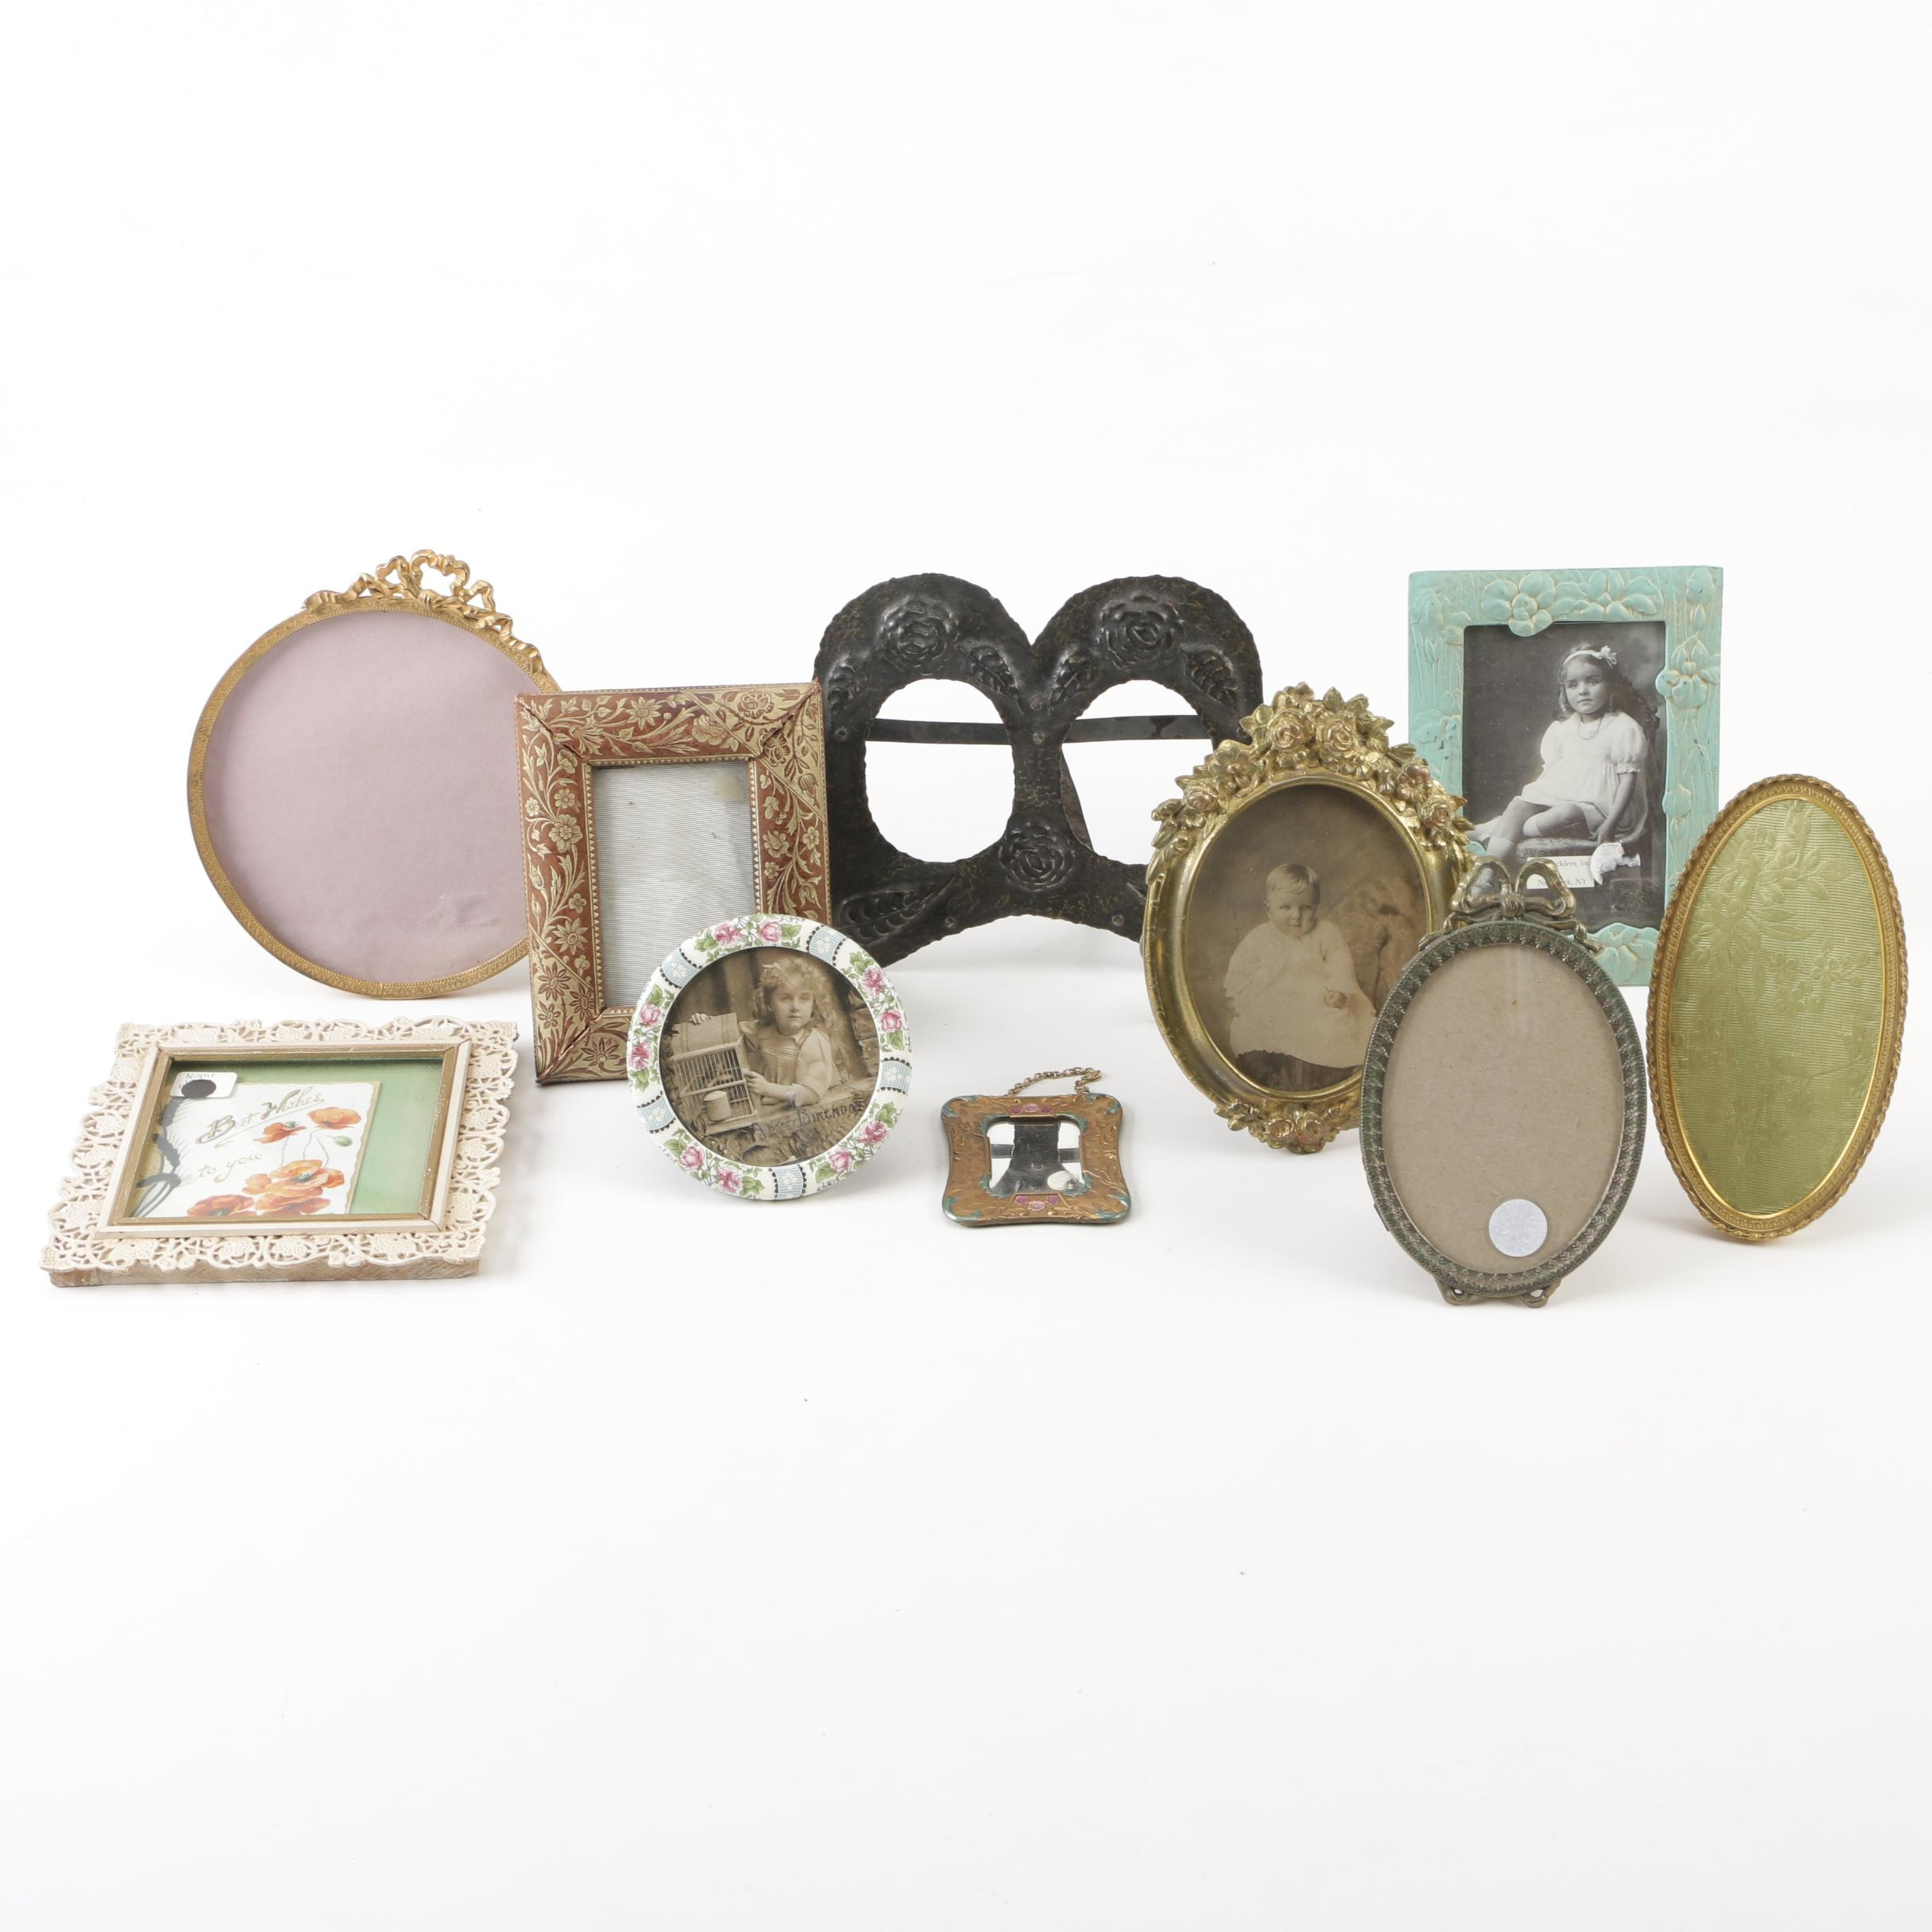 Vintage Metal, Leather, and Wood Picture Frames and Mirror